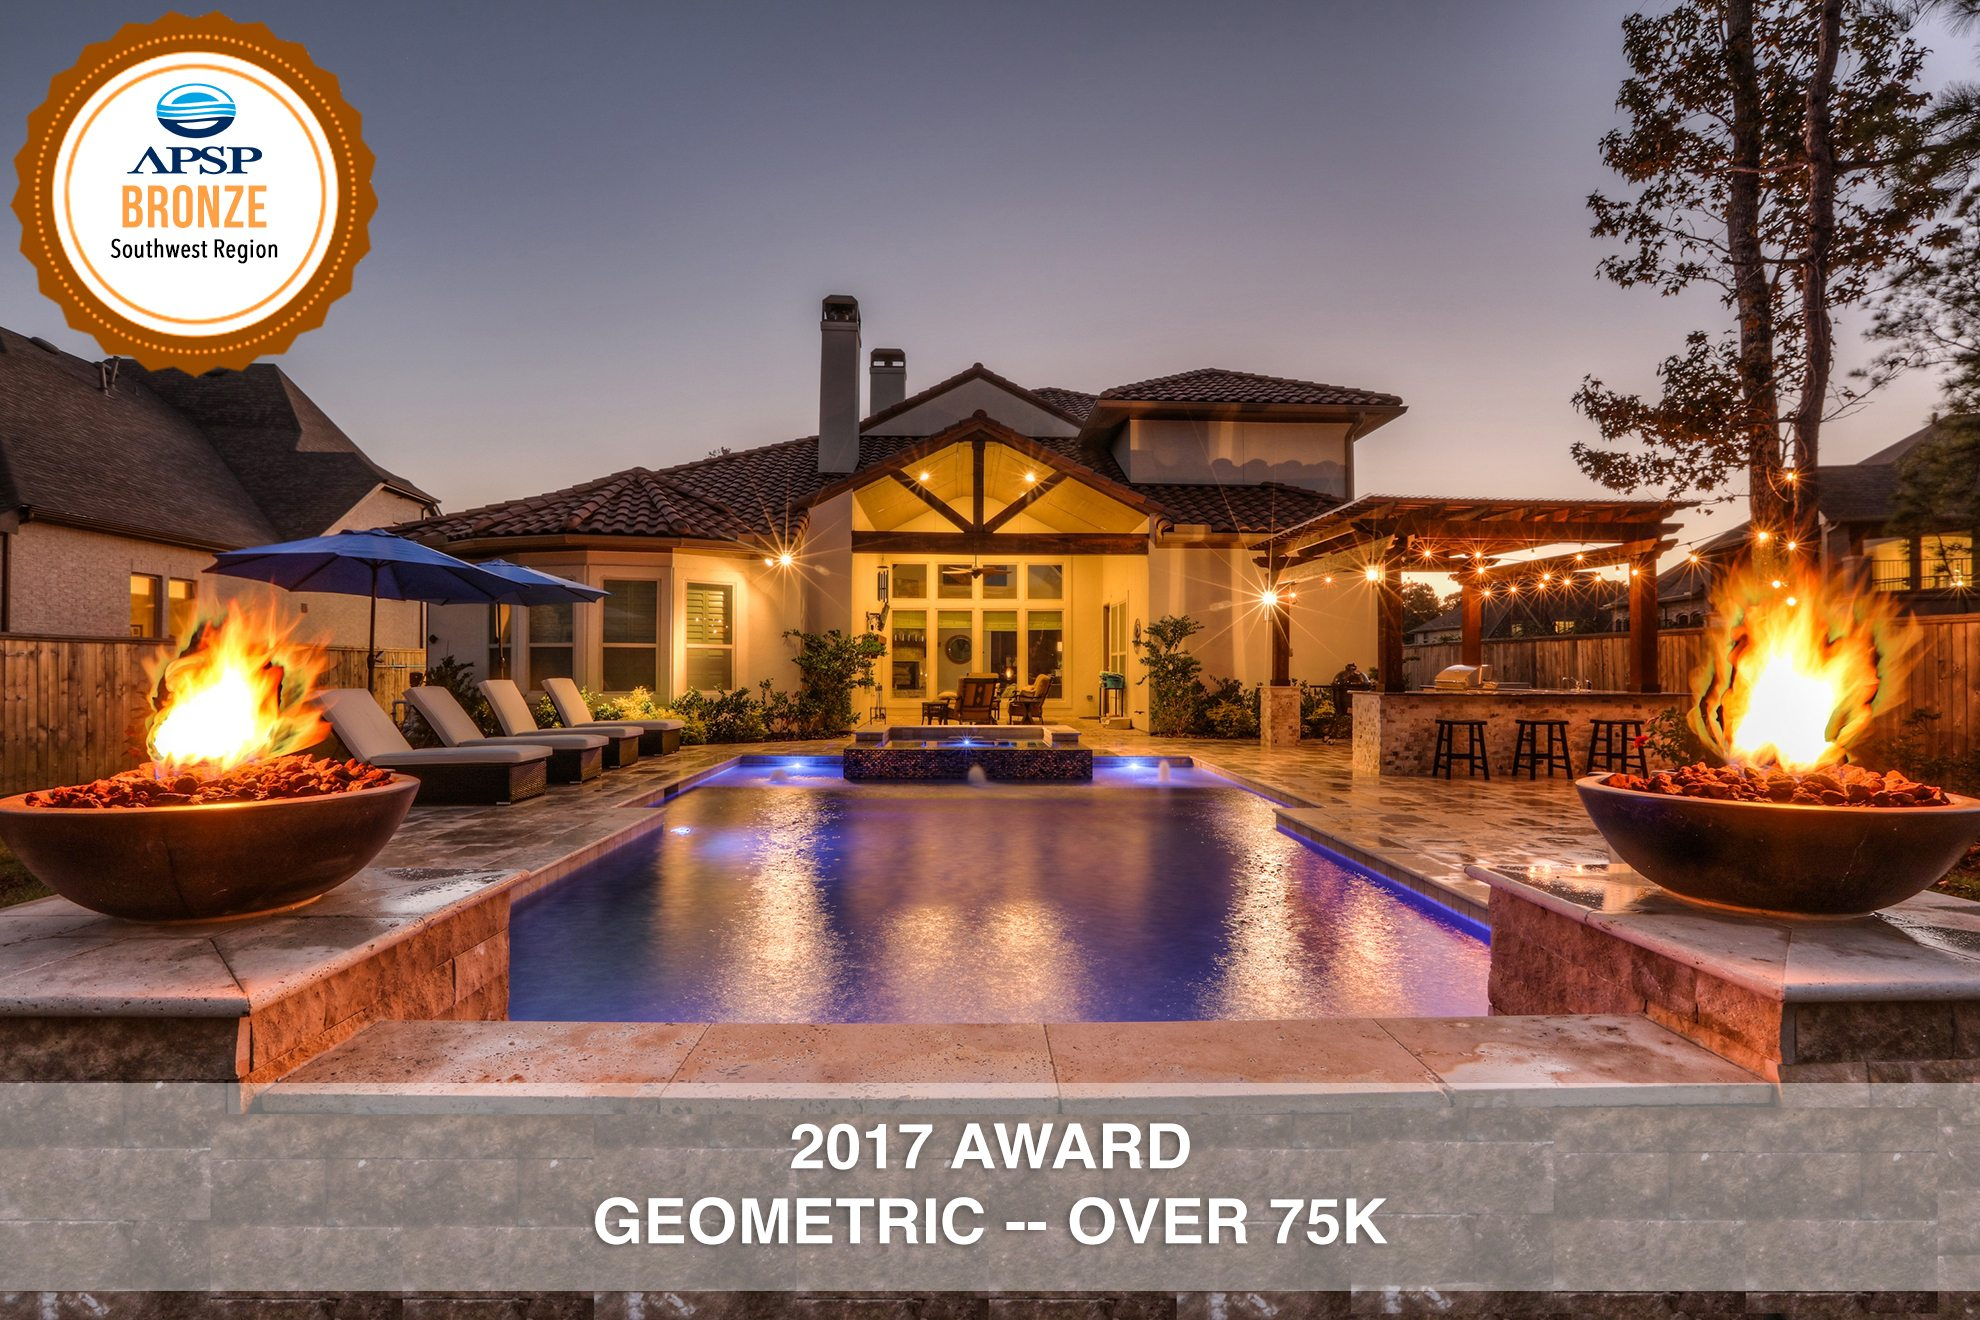 Awards recognition regal pools the woodlands tx for International pool and spa show 2016